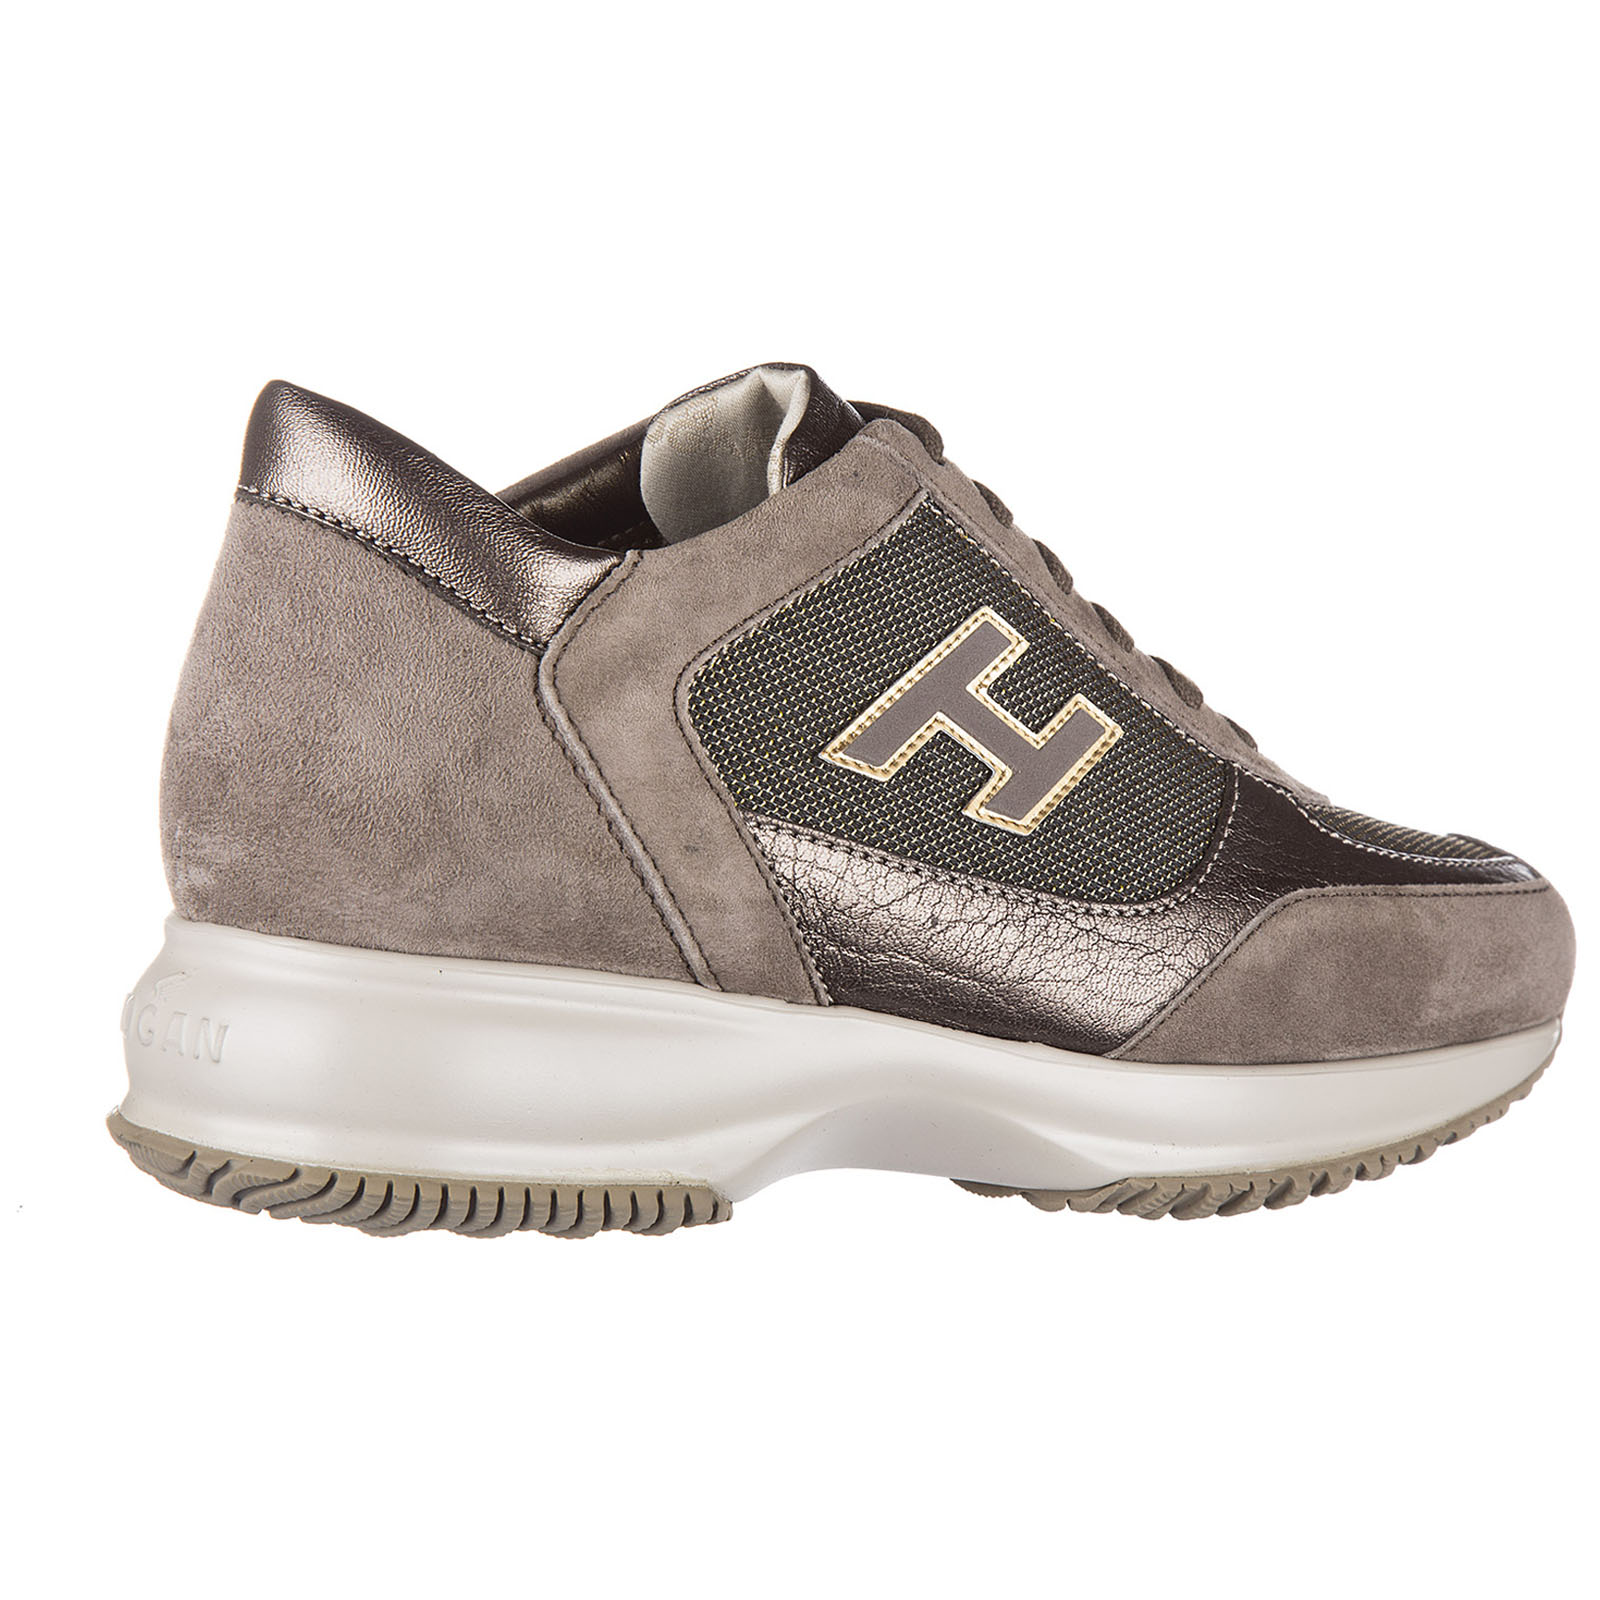 544d150cebf7 ... Women s shoes suede trainers sneakers interactive h flock ...